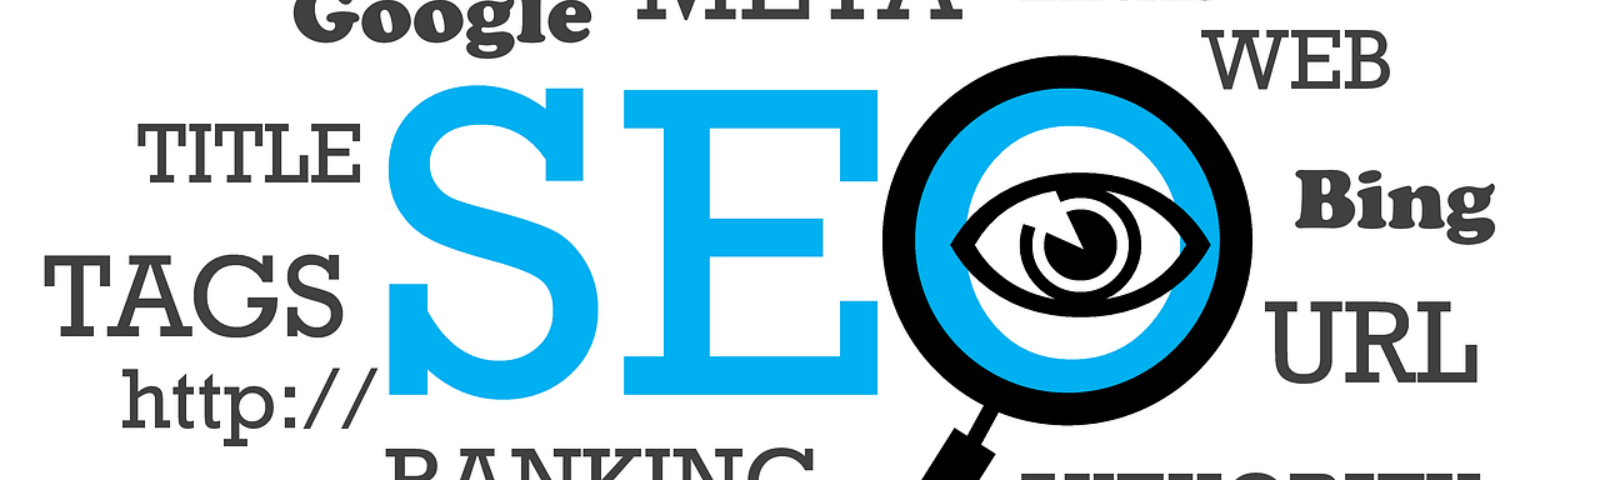 Image for Optimize My Medium Article shows the words SEO, Meta, Google, and others with magnifying glass